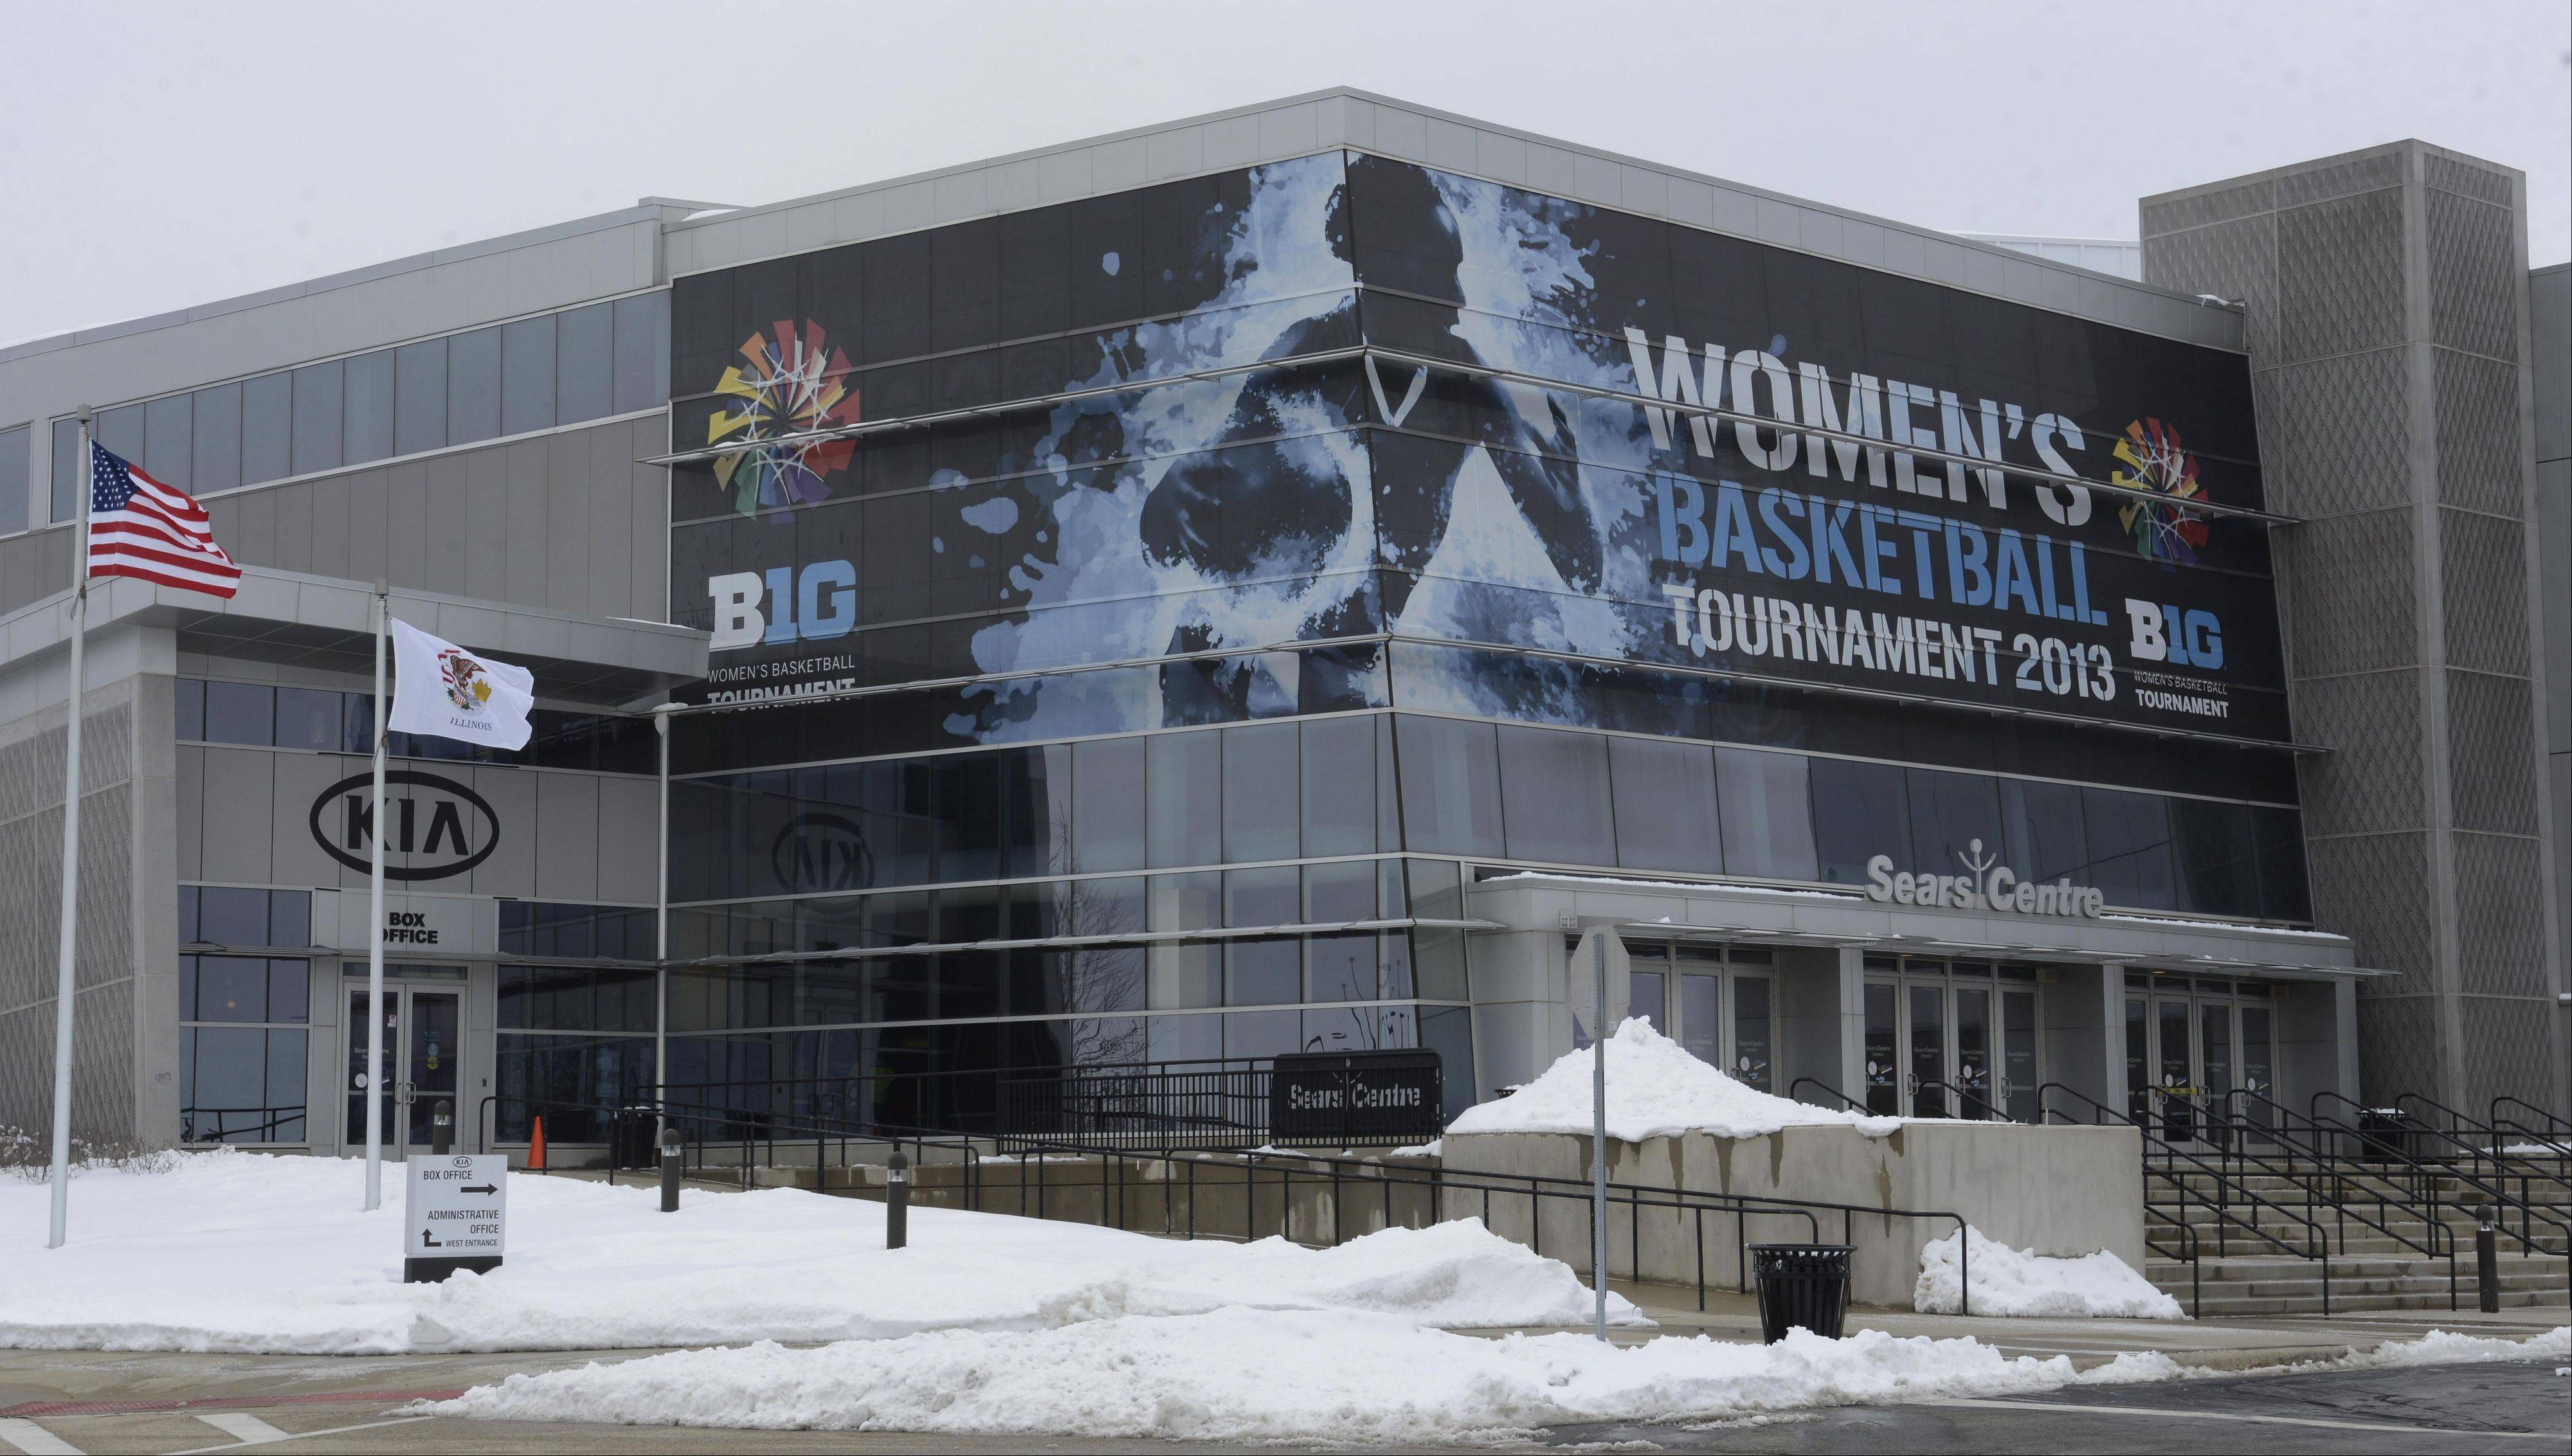 The Big Ten women's basketball tournament March 7-10 helped the Sears Centre in Hoffman Estates break a monthly paid attendance record.